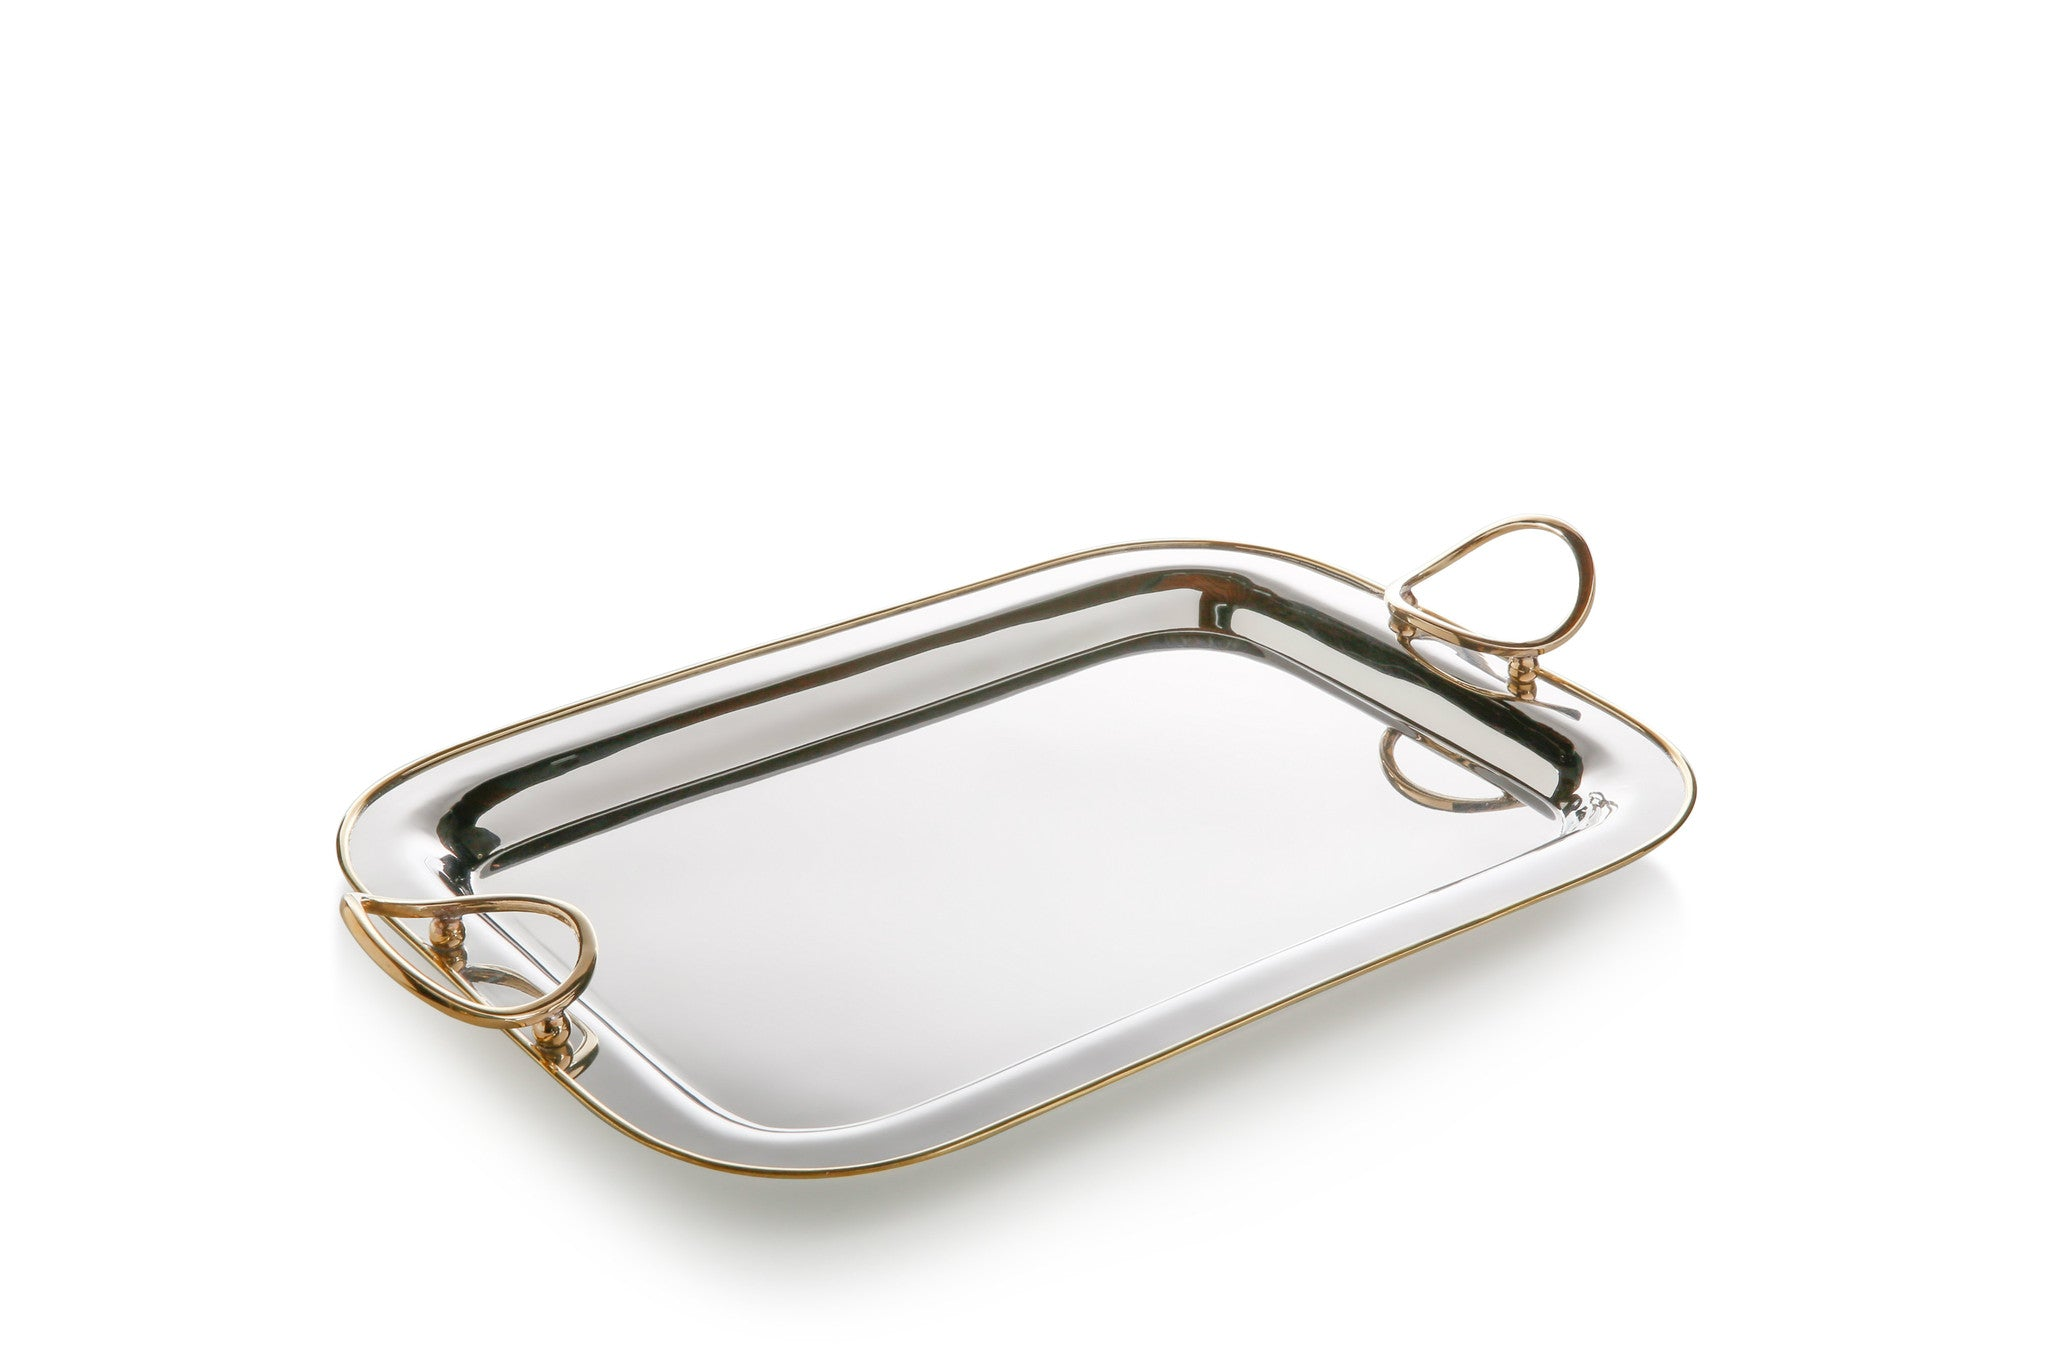 Polished Nickel & Gold Precious Tray - CARLYLE AVENUE